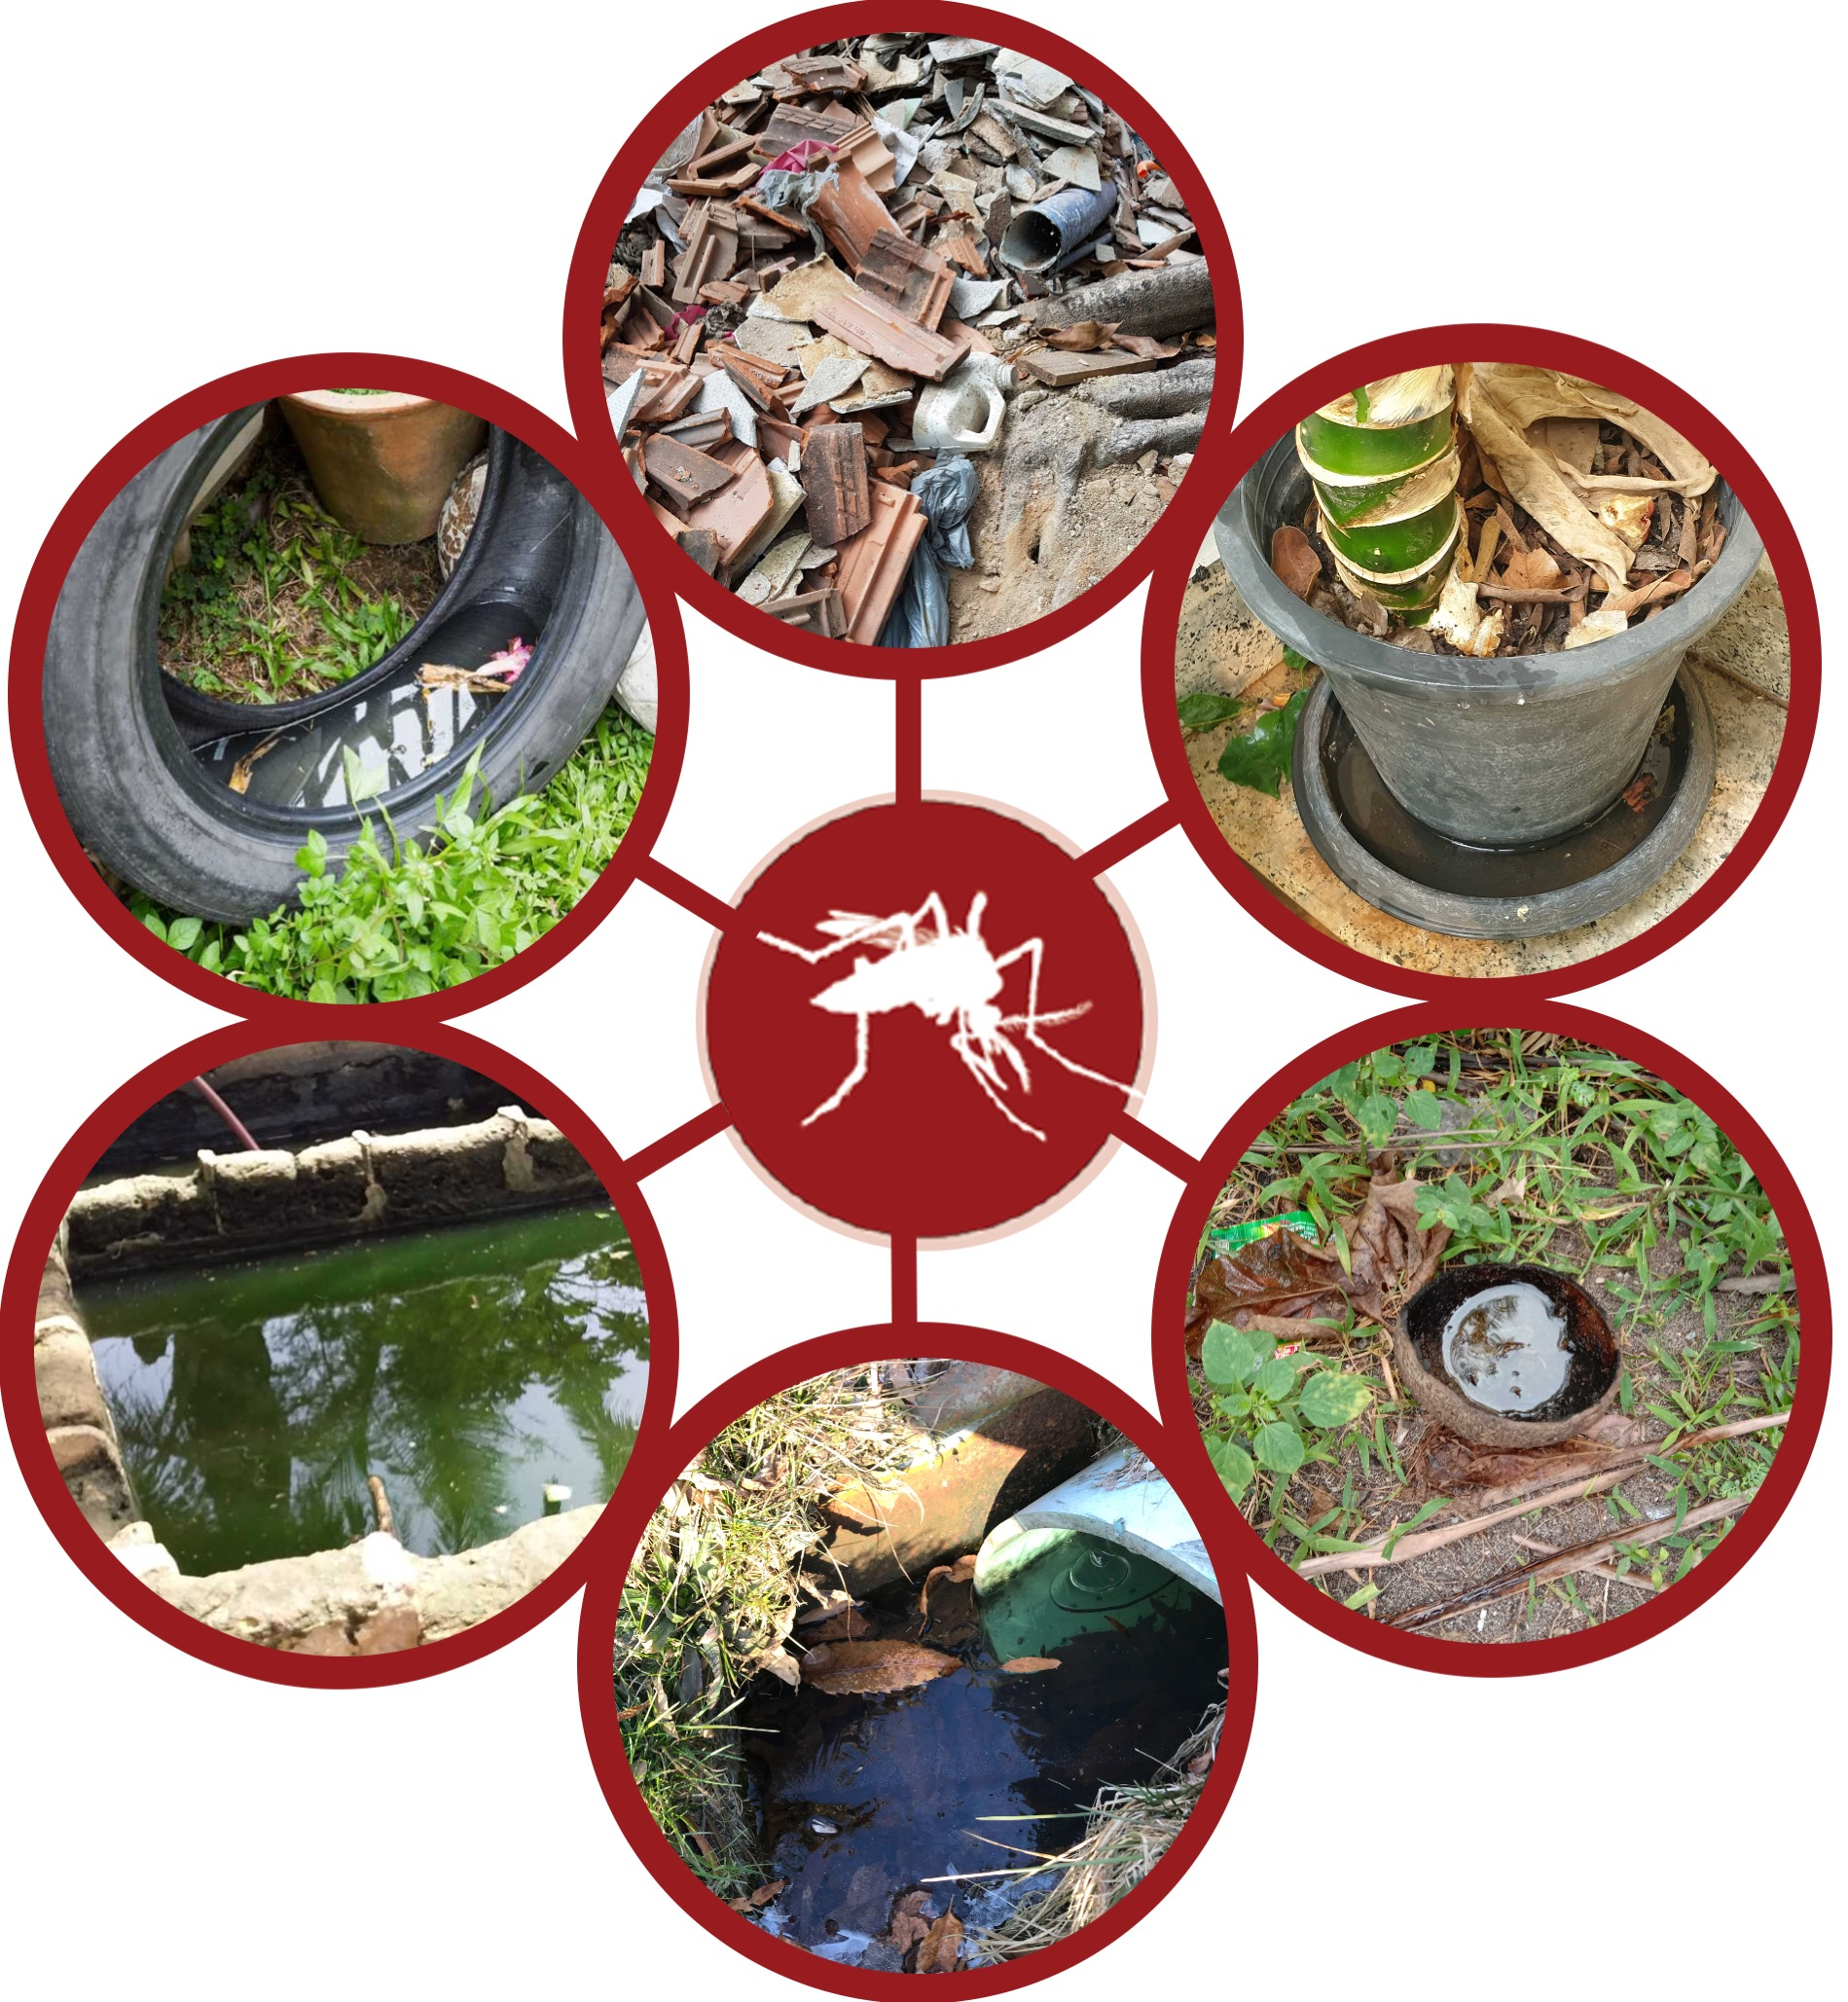 Examples of mosquito habitats reported by GLOBE Observers.